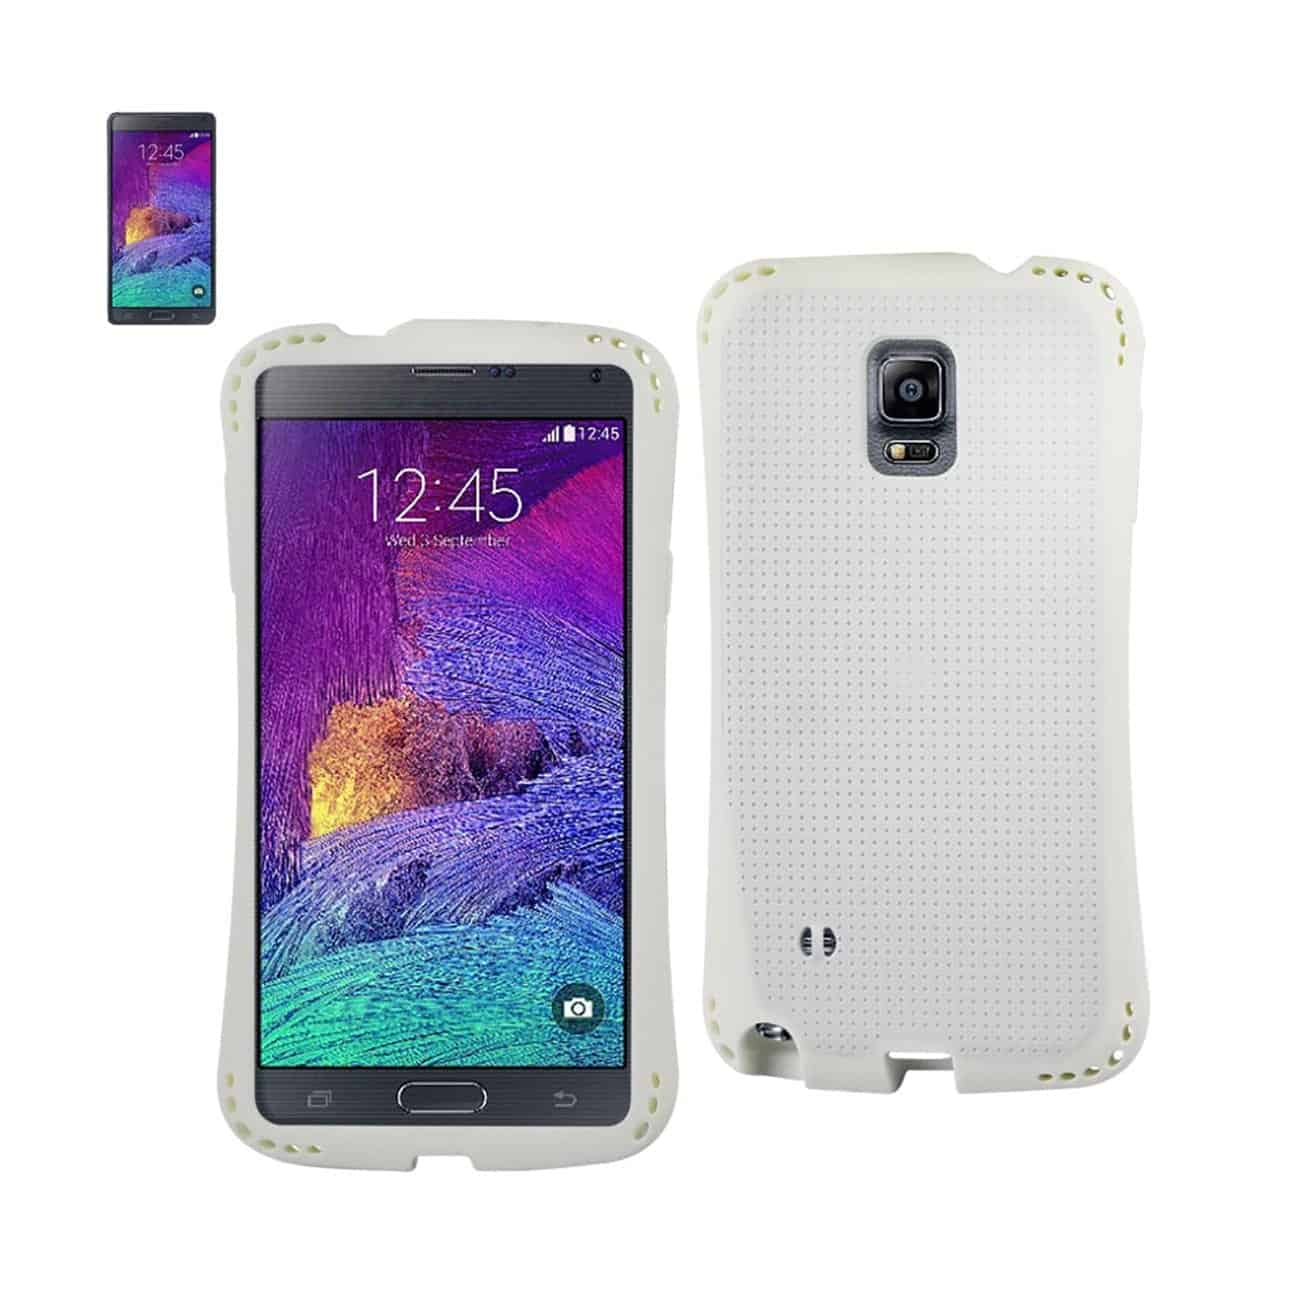 SAMSUNG GALAXY NOTE 4 DROPPROOF AIR CUSHION CASE WITH CHAIN HOLE IN WHITE